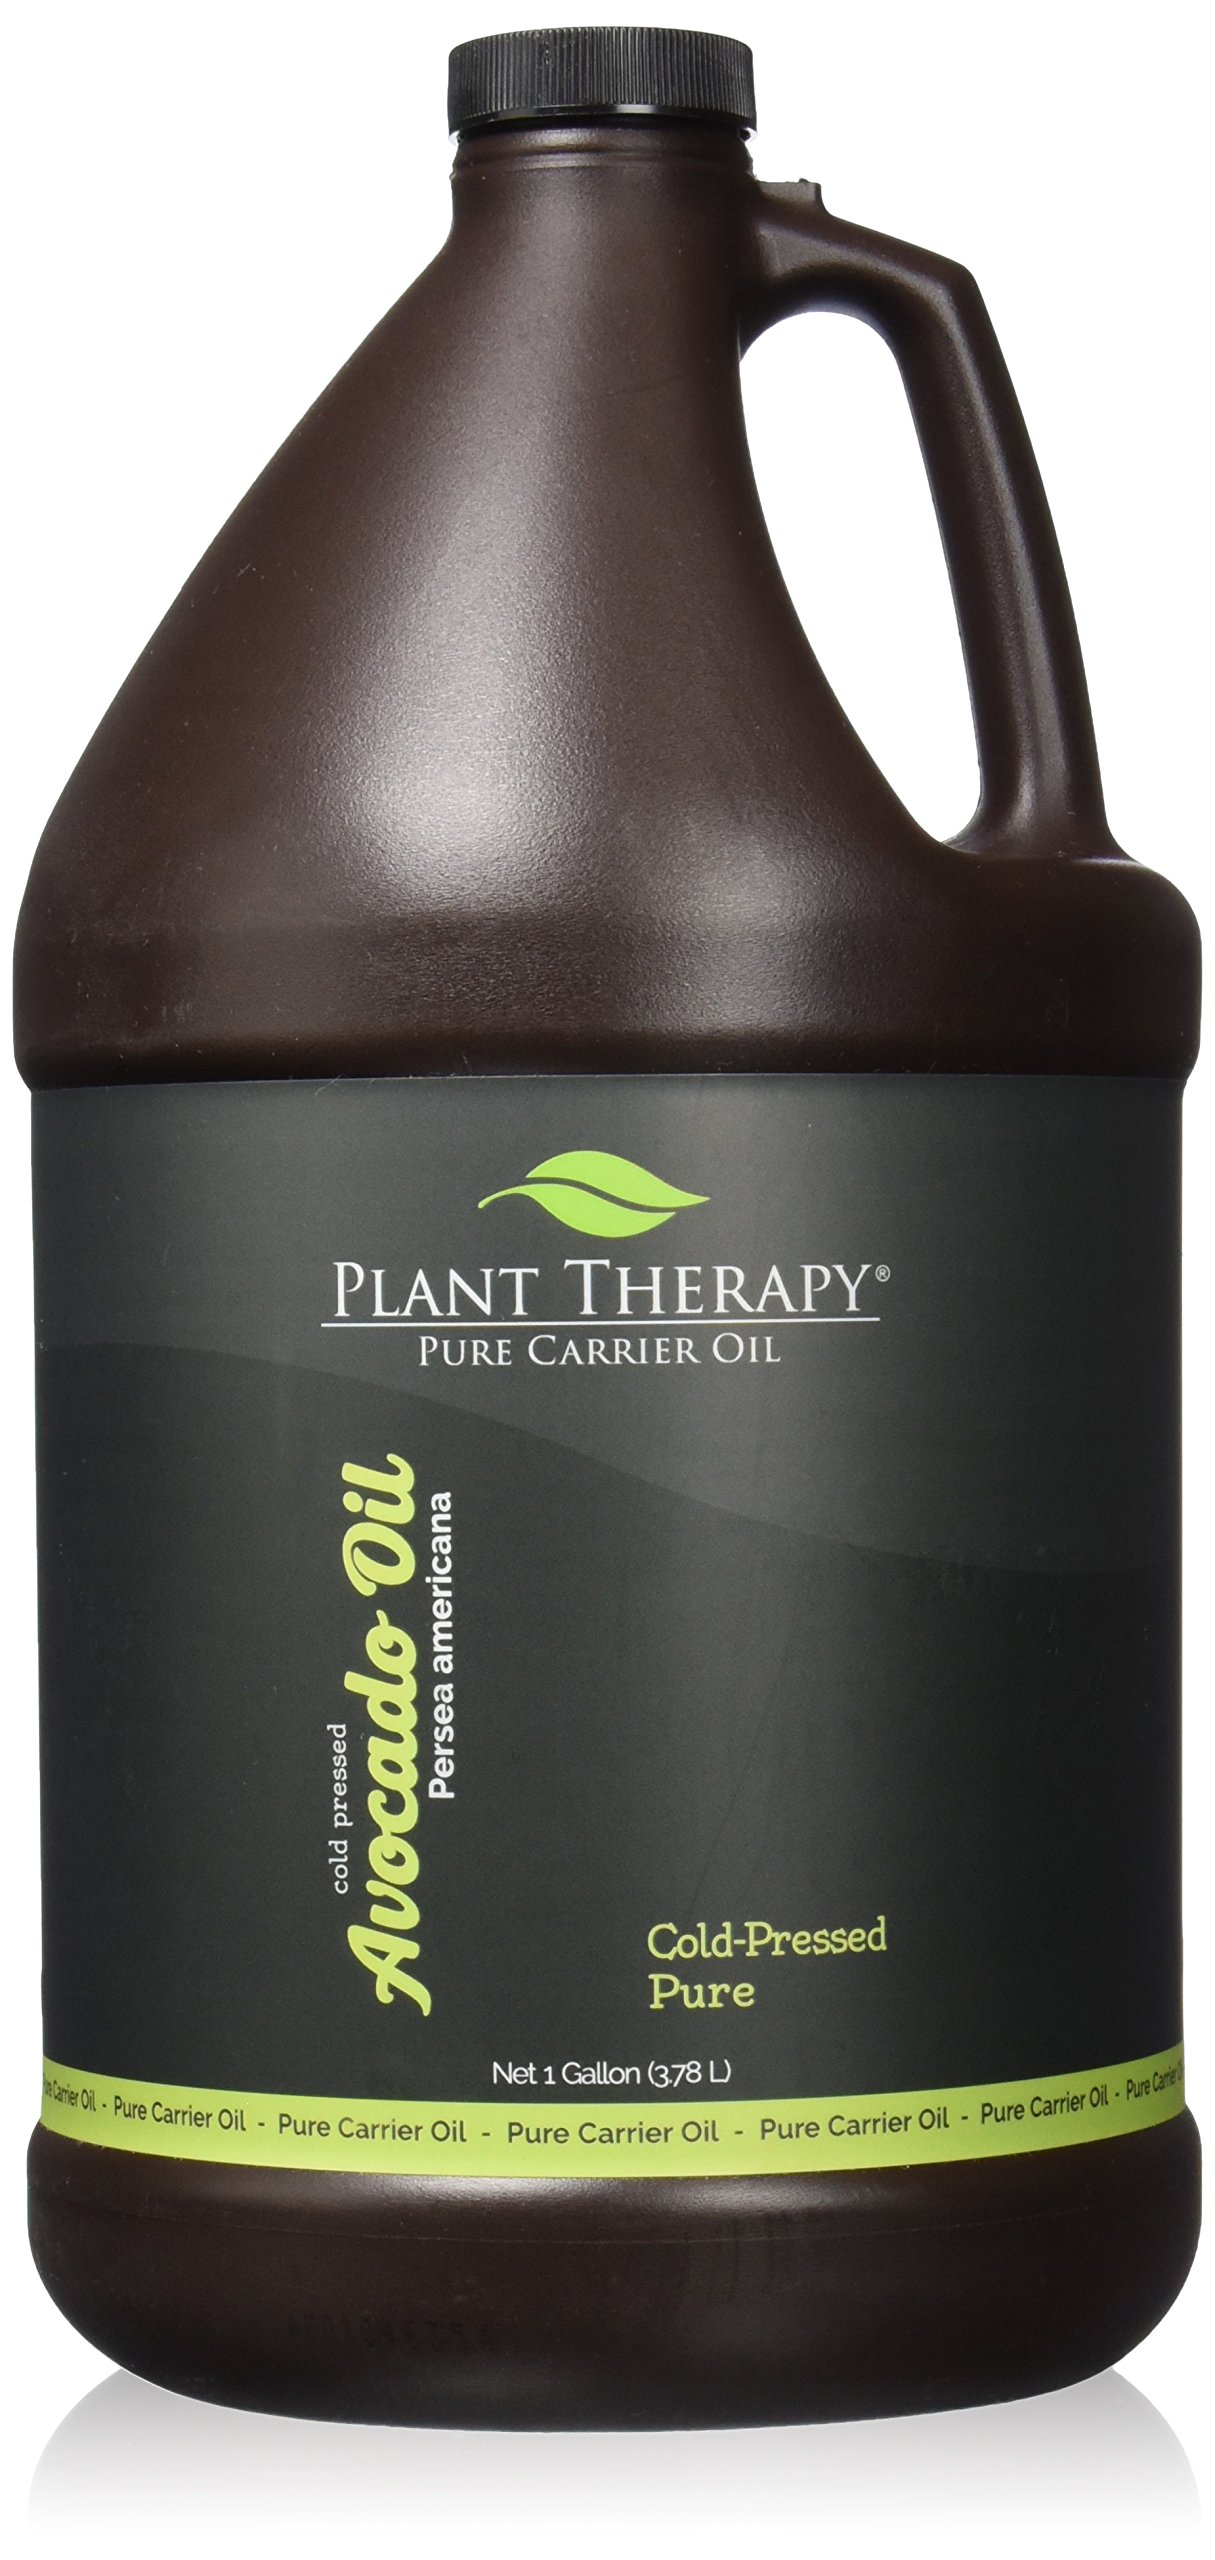 Plant Therapy Avocado Carrier Oil. A Base Oil for Aromatherapy, Essential Oil or Massage Use. 1 gal.